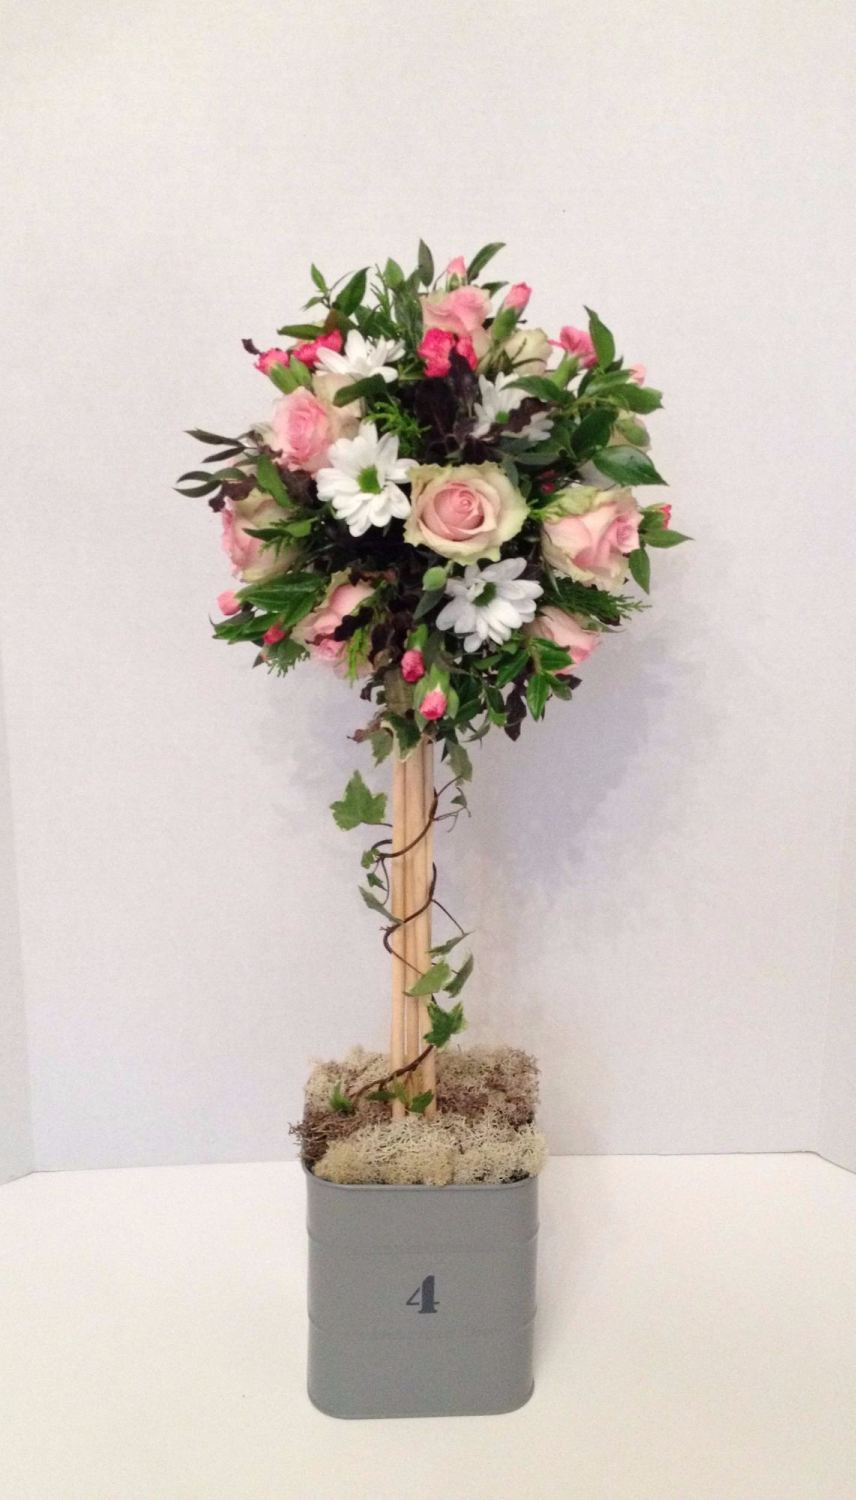 Topiary Tree floral design - delicate romantic soft pinks